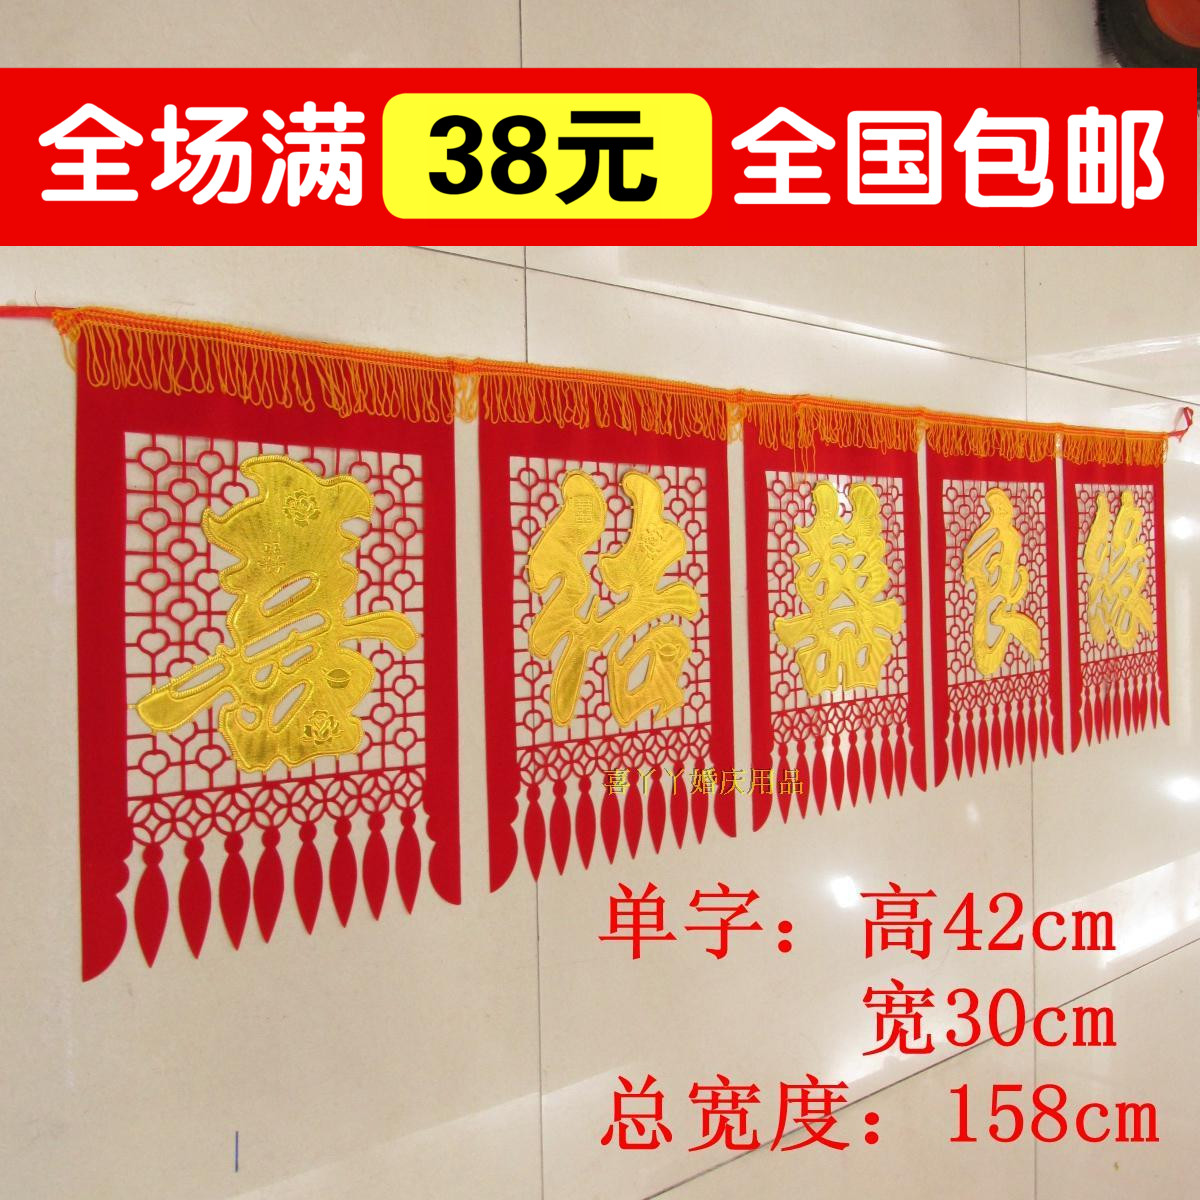 New lintel banner wedding room layout decoration blessing door stickers curtain high-grade flocking wedding  sc 1 st  ChinaHao.com & USD 6.49] New lintel banner wedding room layout decoration blessing ...